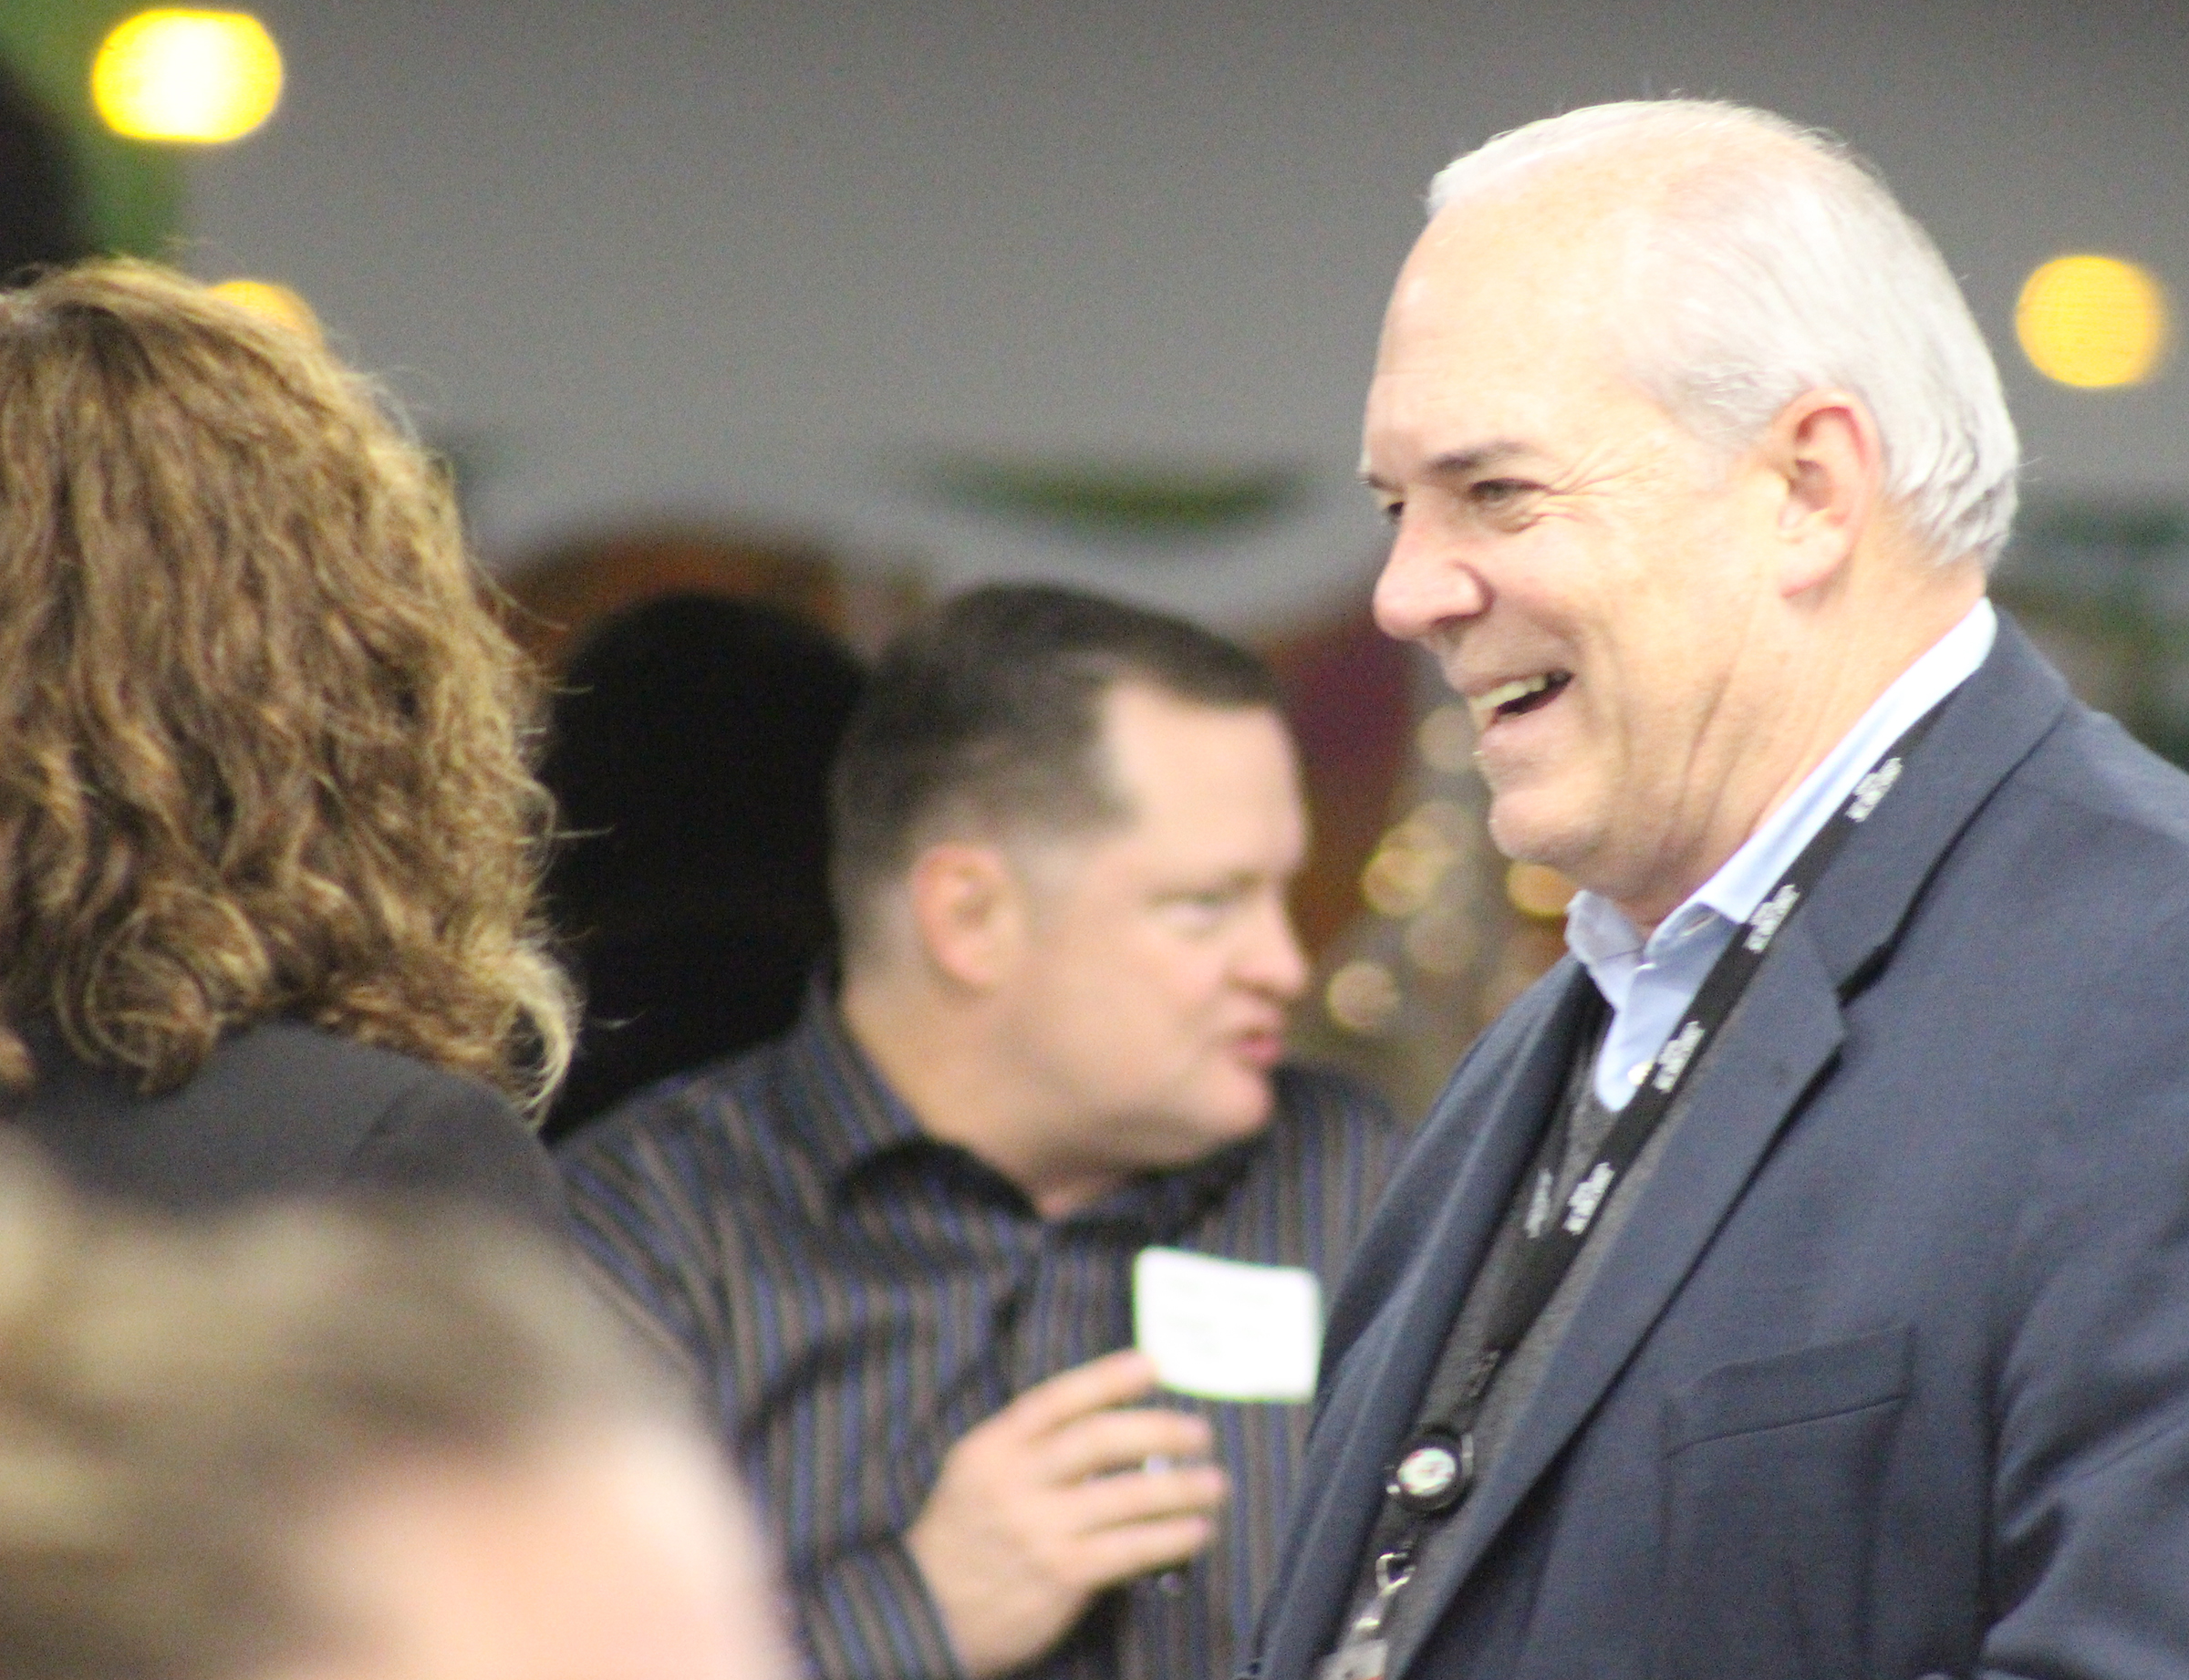 David Brown, president and CEO of the Greater Omaha Chamber, has a conversation during the Member Appreciation Holiday Open House on Thursday, Dec. 5, 2019. (Photo by Scott Stewart)